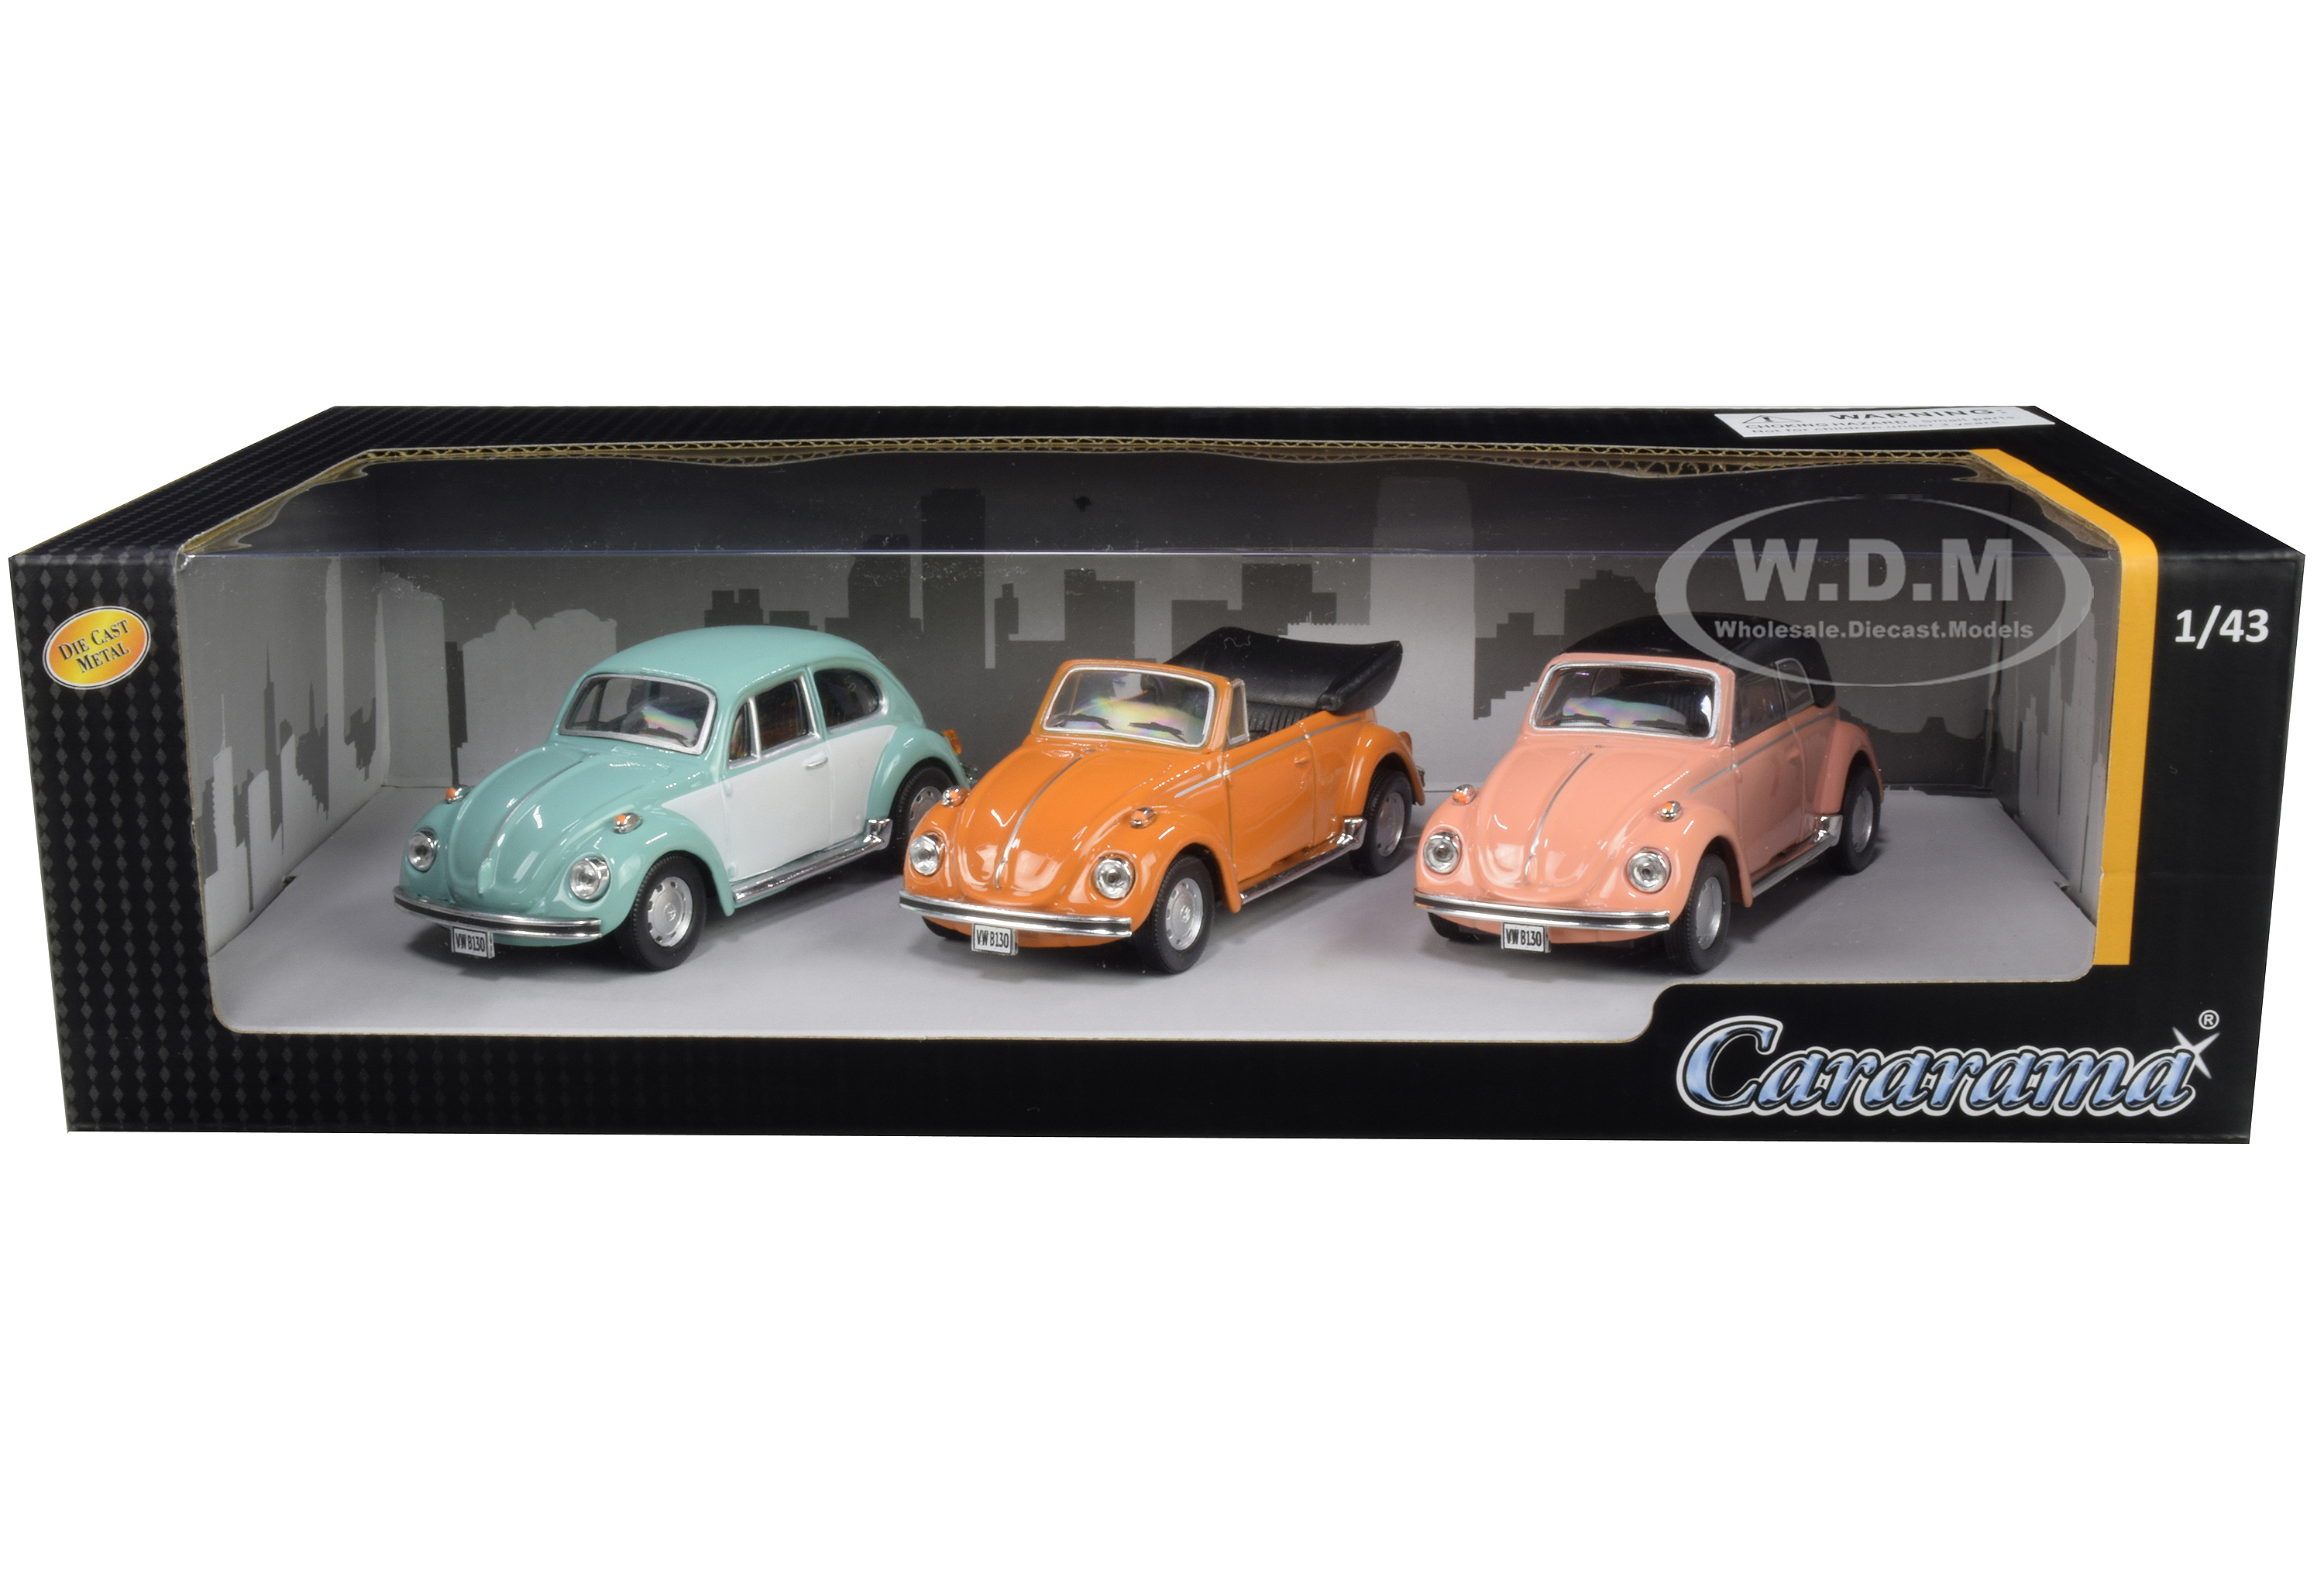 Volkswagen Beetle 3 piece Gift Set 1/43 Diecast Model Cars by Cararama